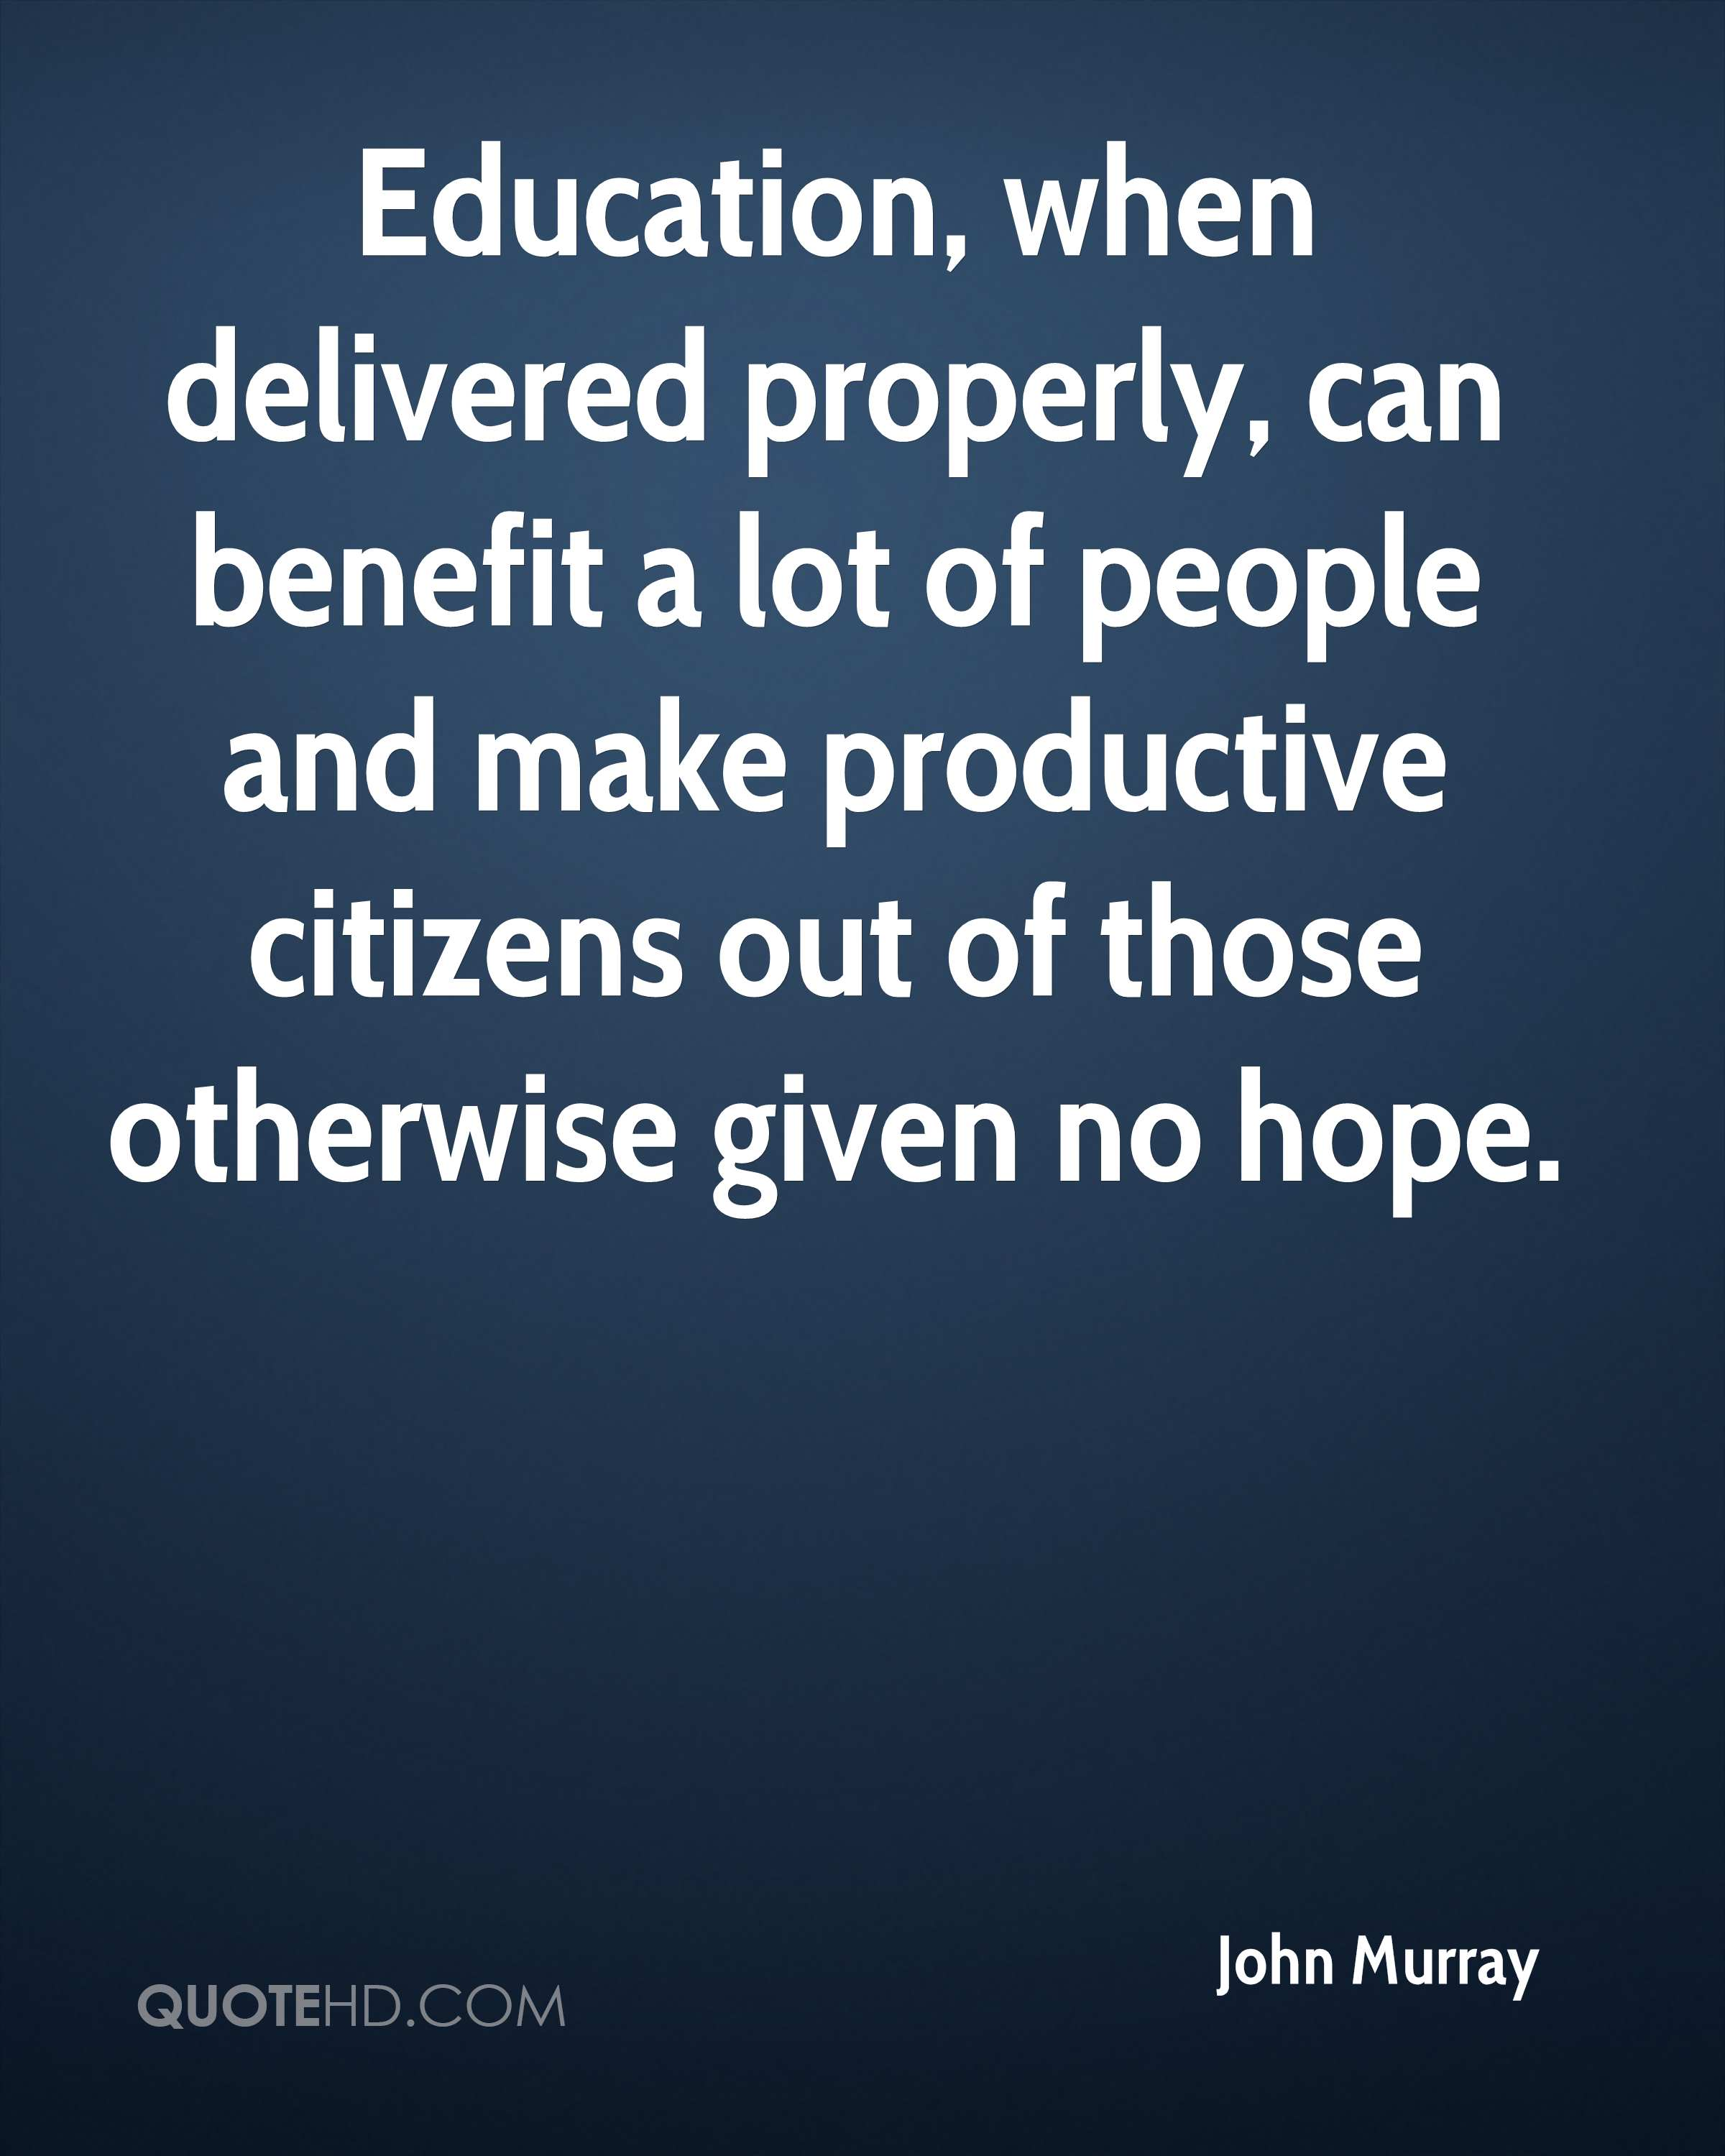 Education, when delivered properly, can benefit a lot of people and make productive citizens out of those otherwise given no hope.